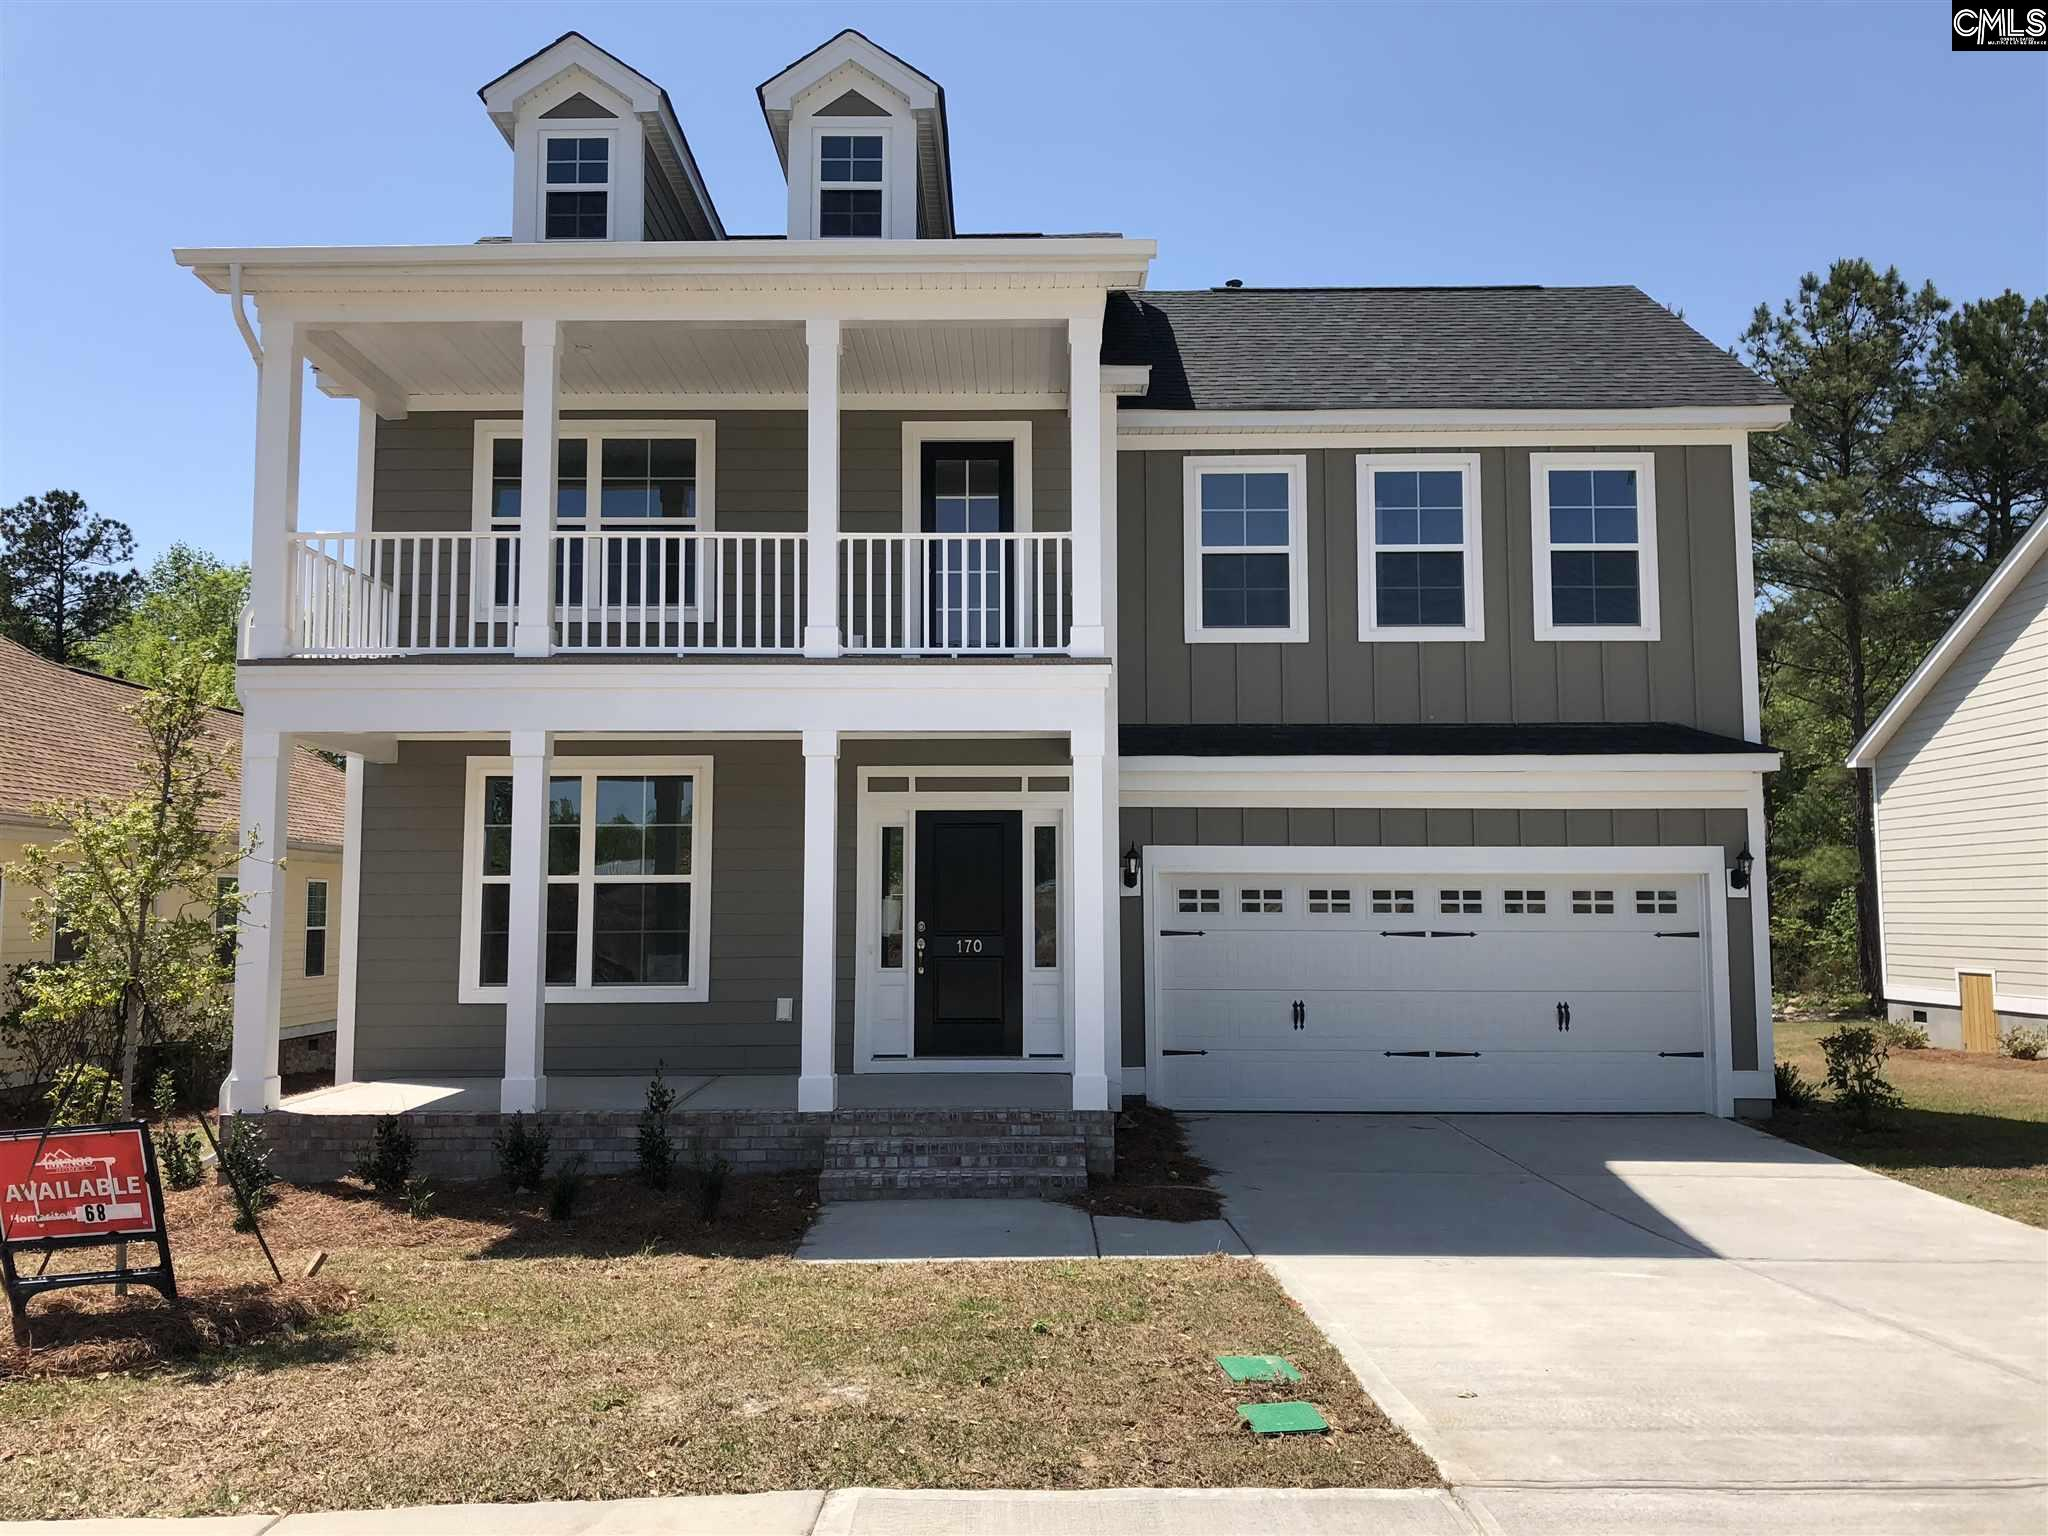 170 Baysdale #68 Columbia, SC 29229